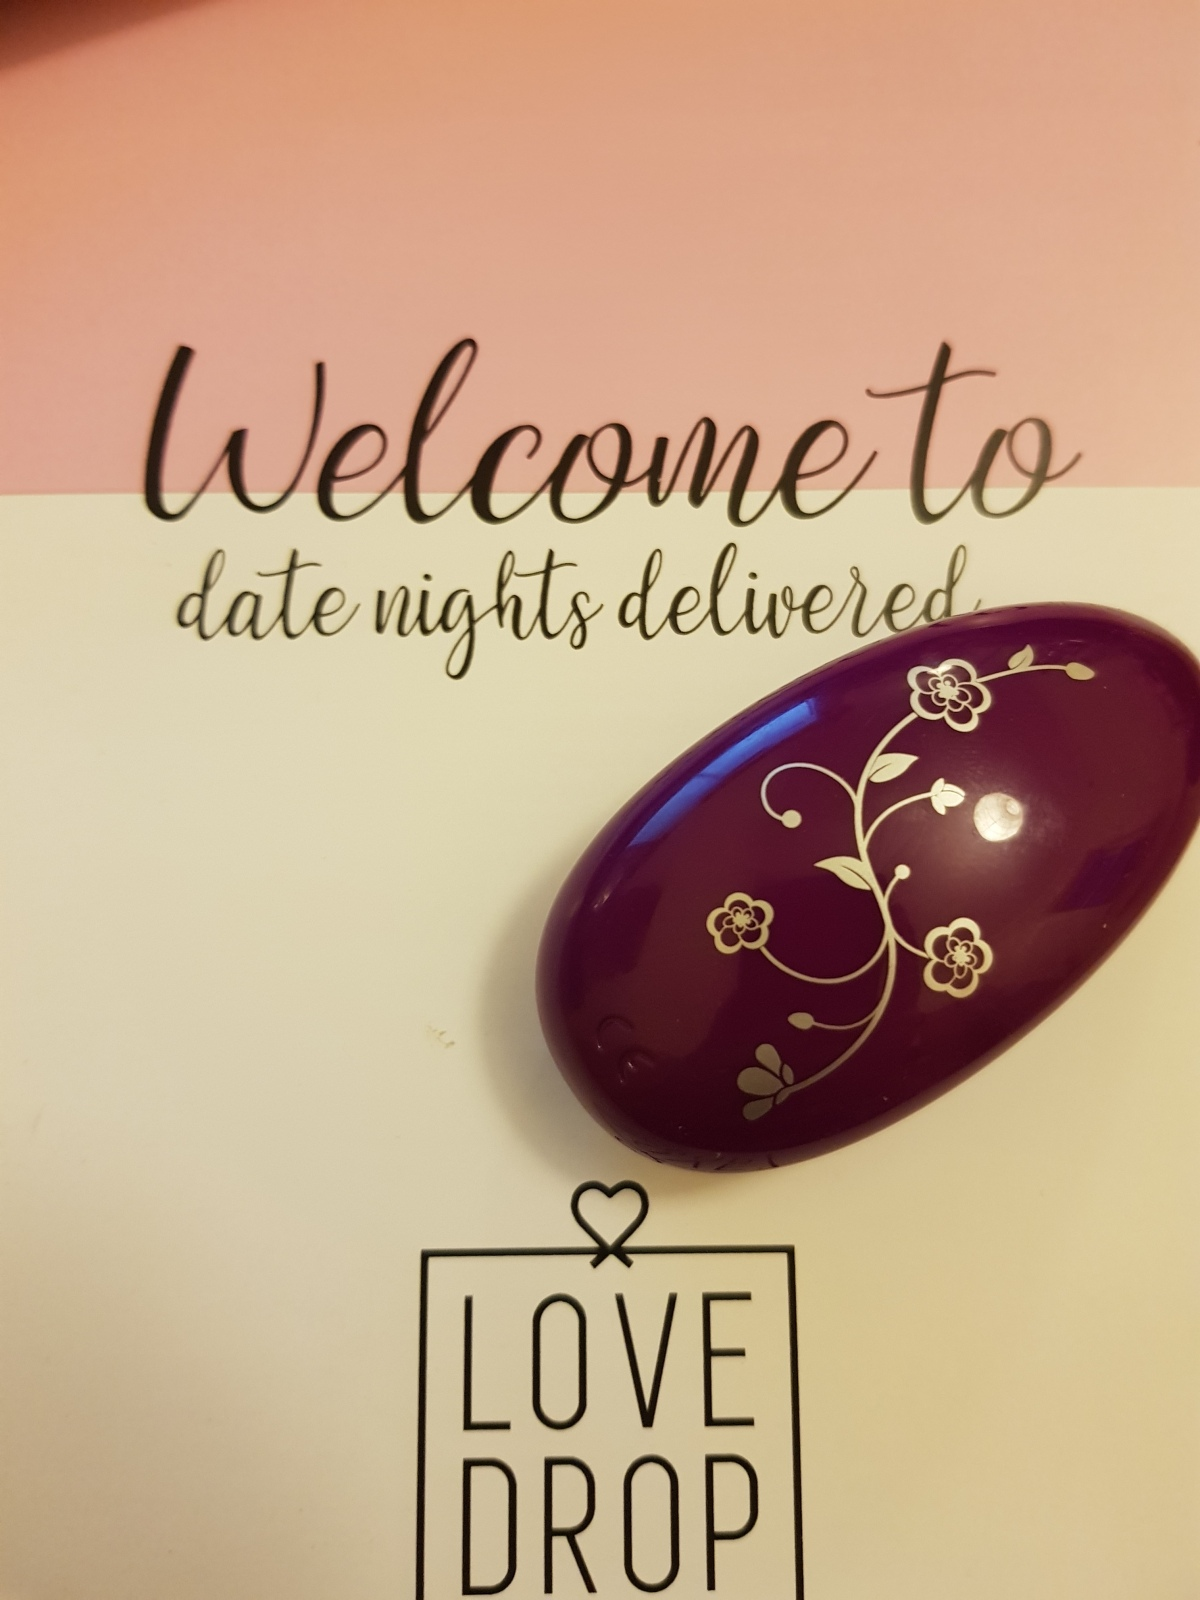 Love Drop UK date night subscription box